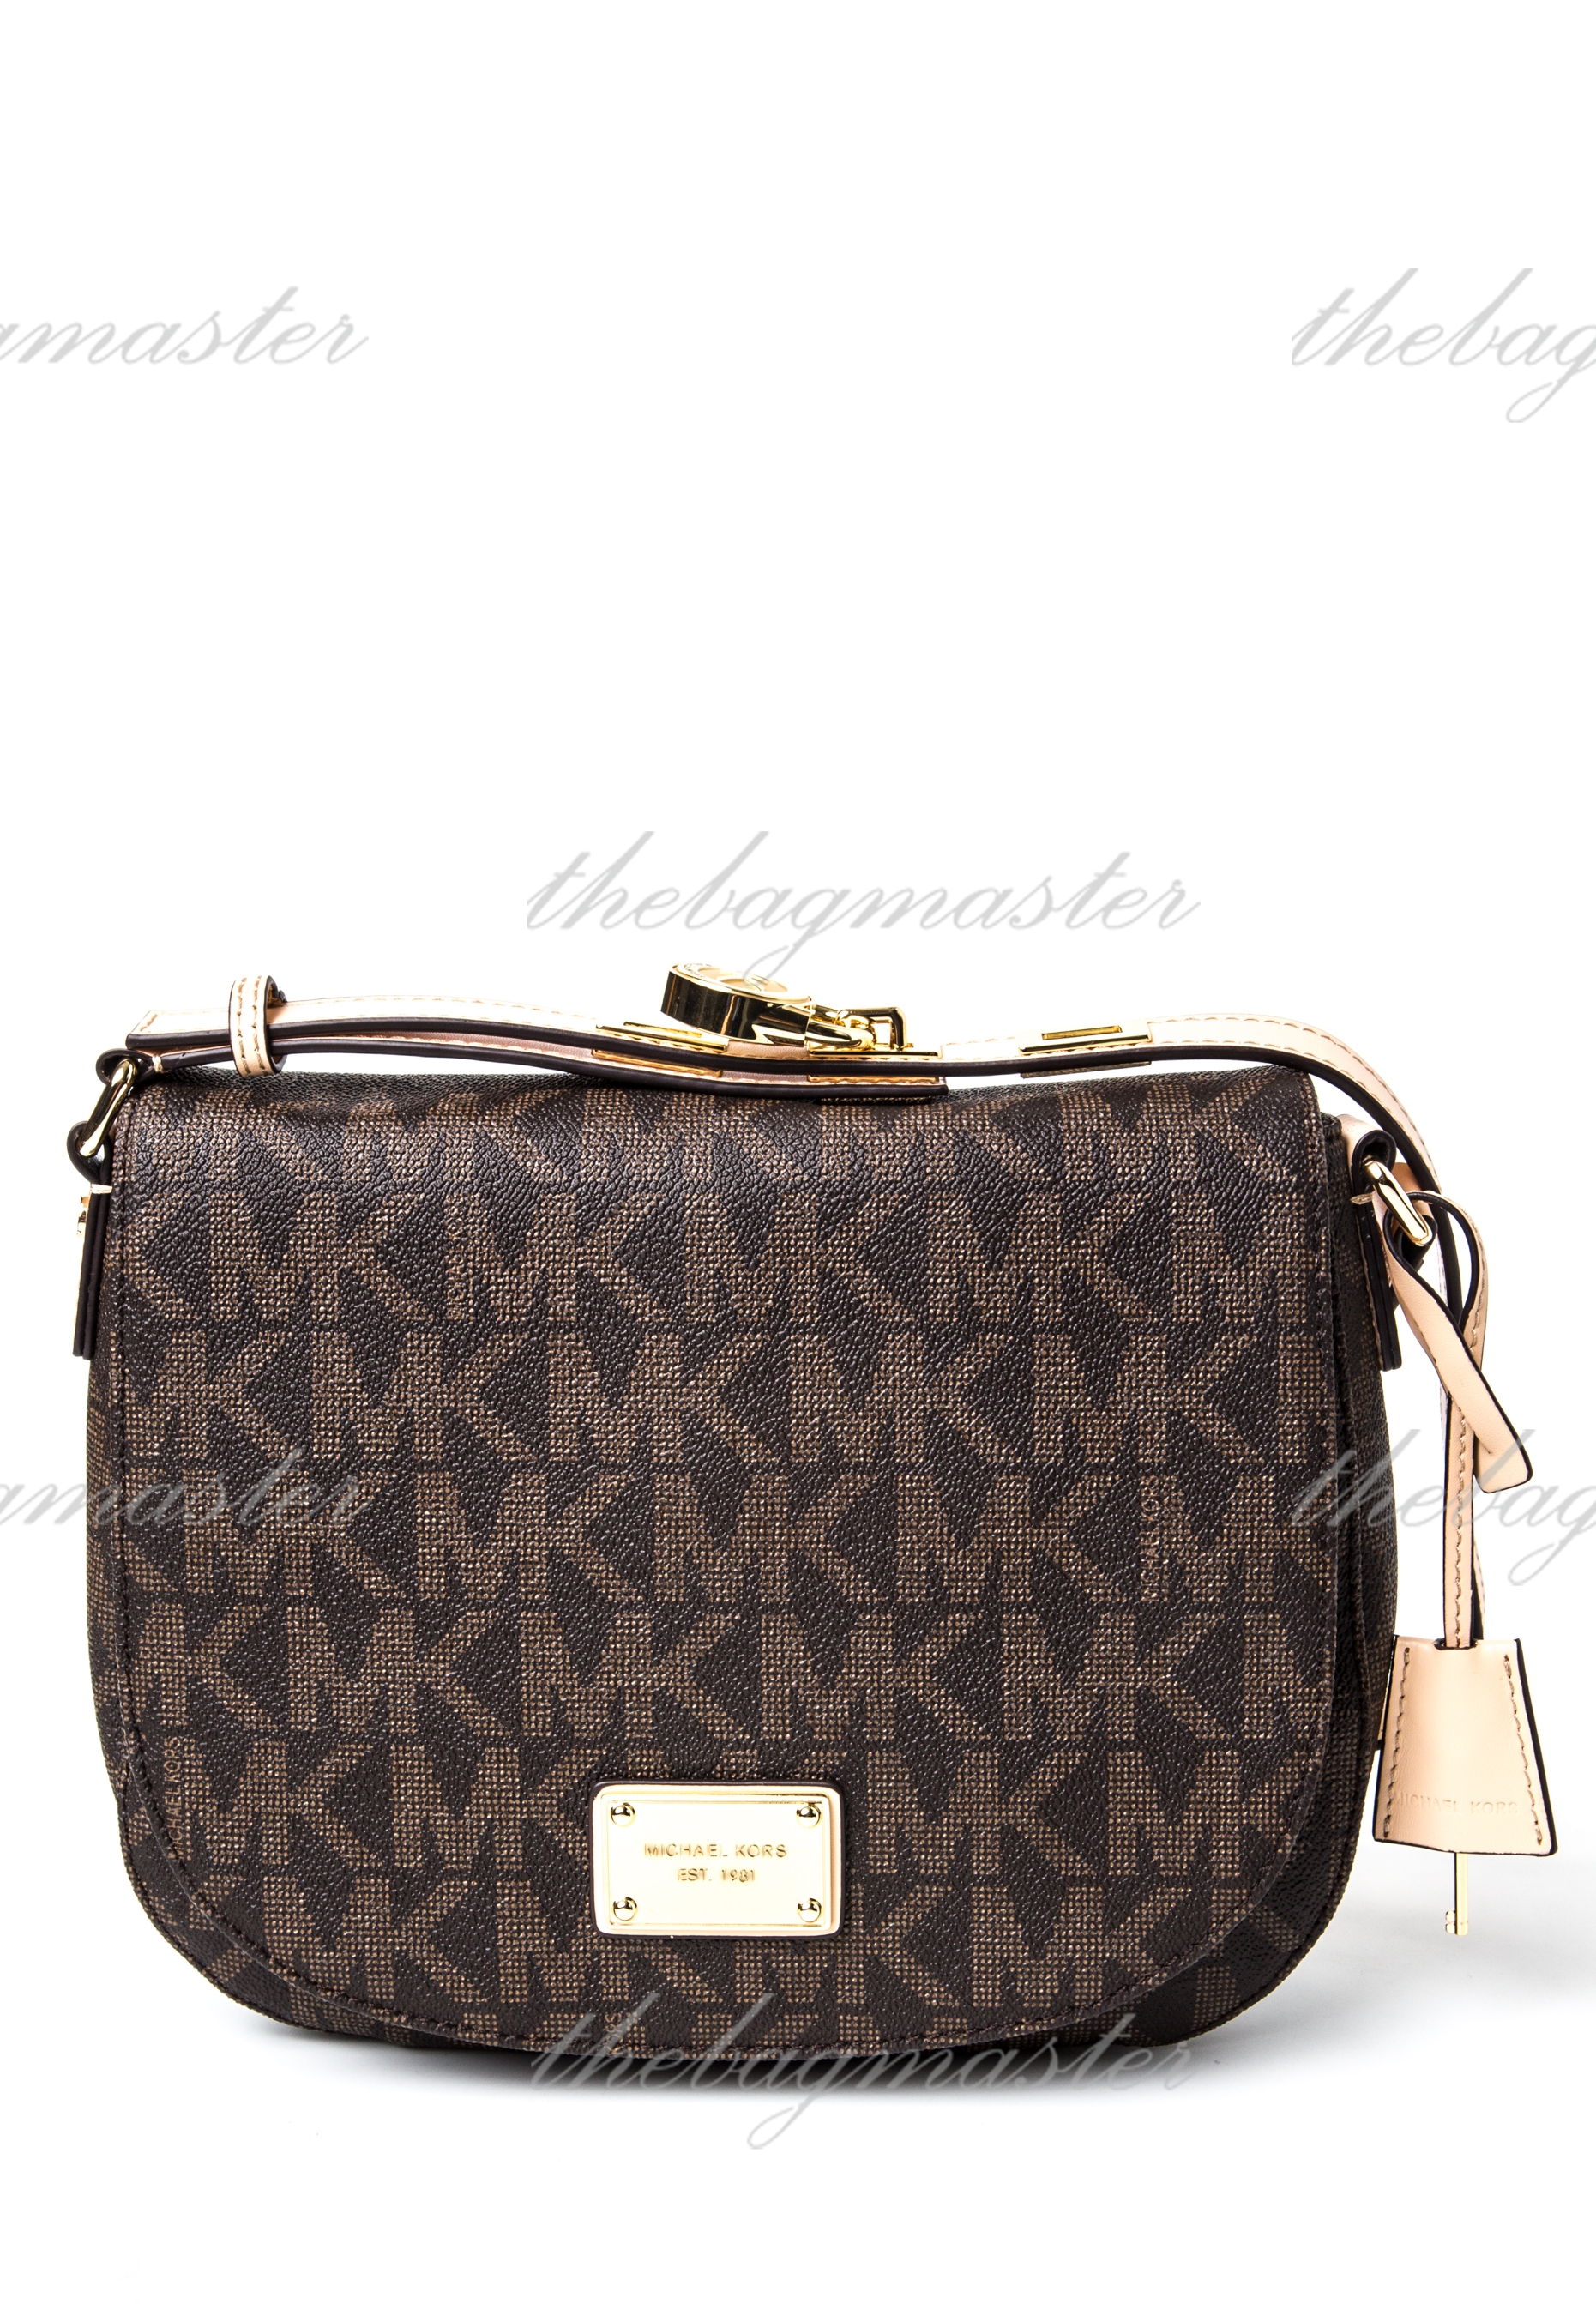 b21b825d67fdb Michael Kors Hamilton MK Signature PVC Messenger Crossbody Bag – Luggage  Brown